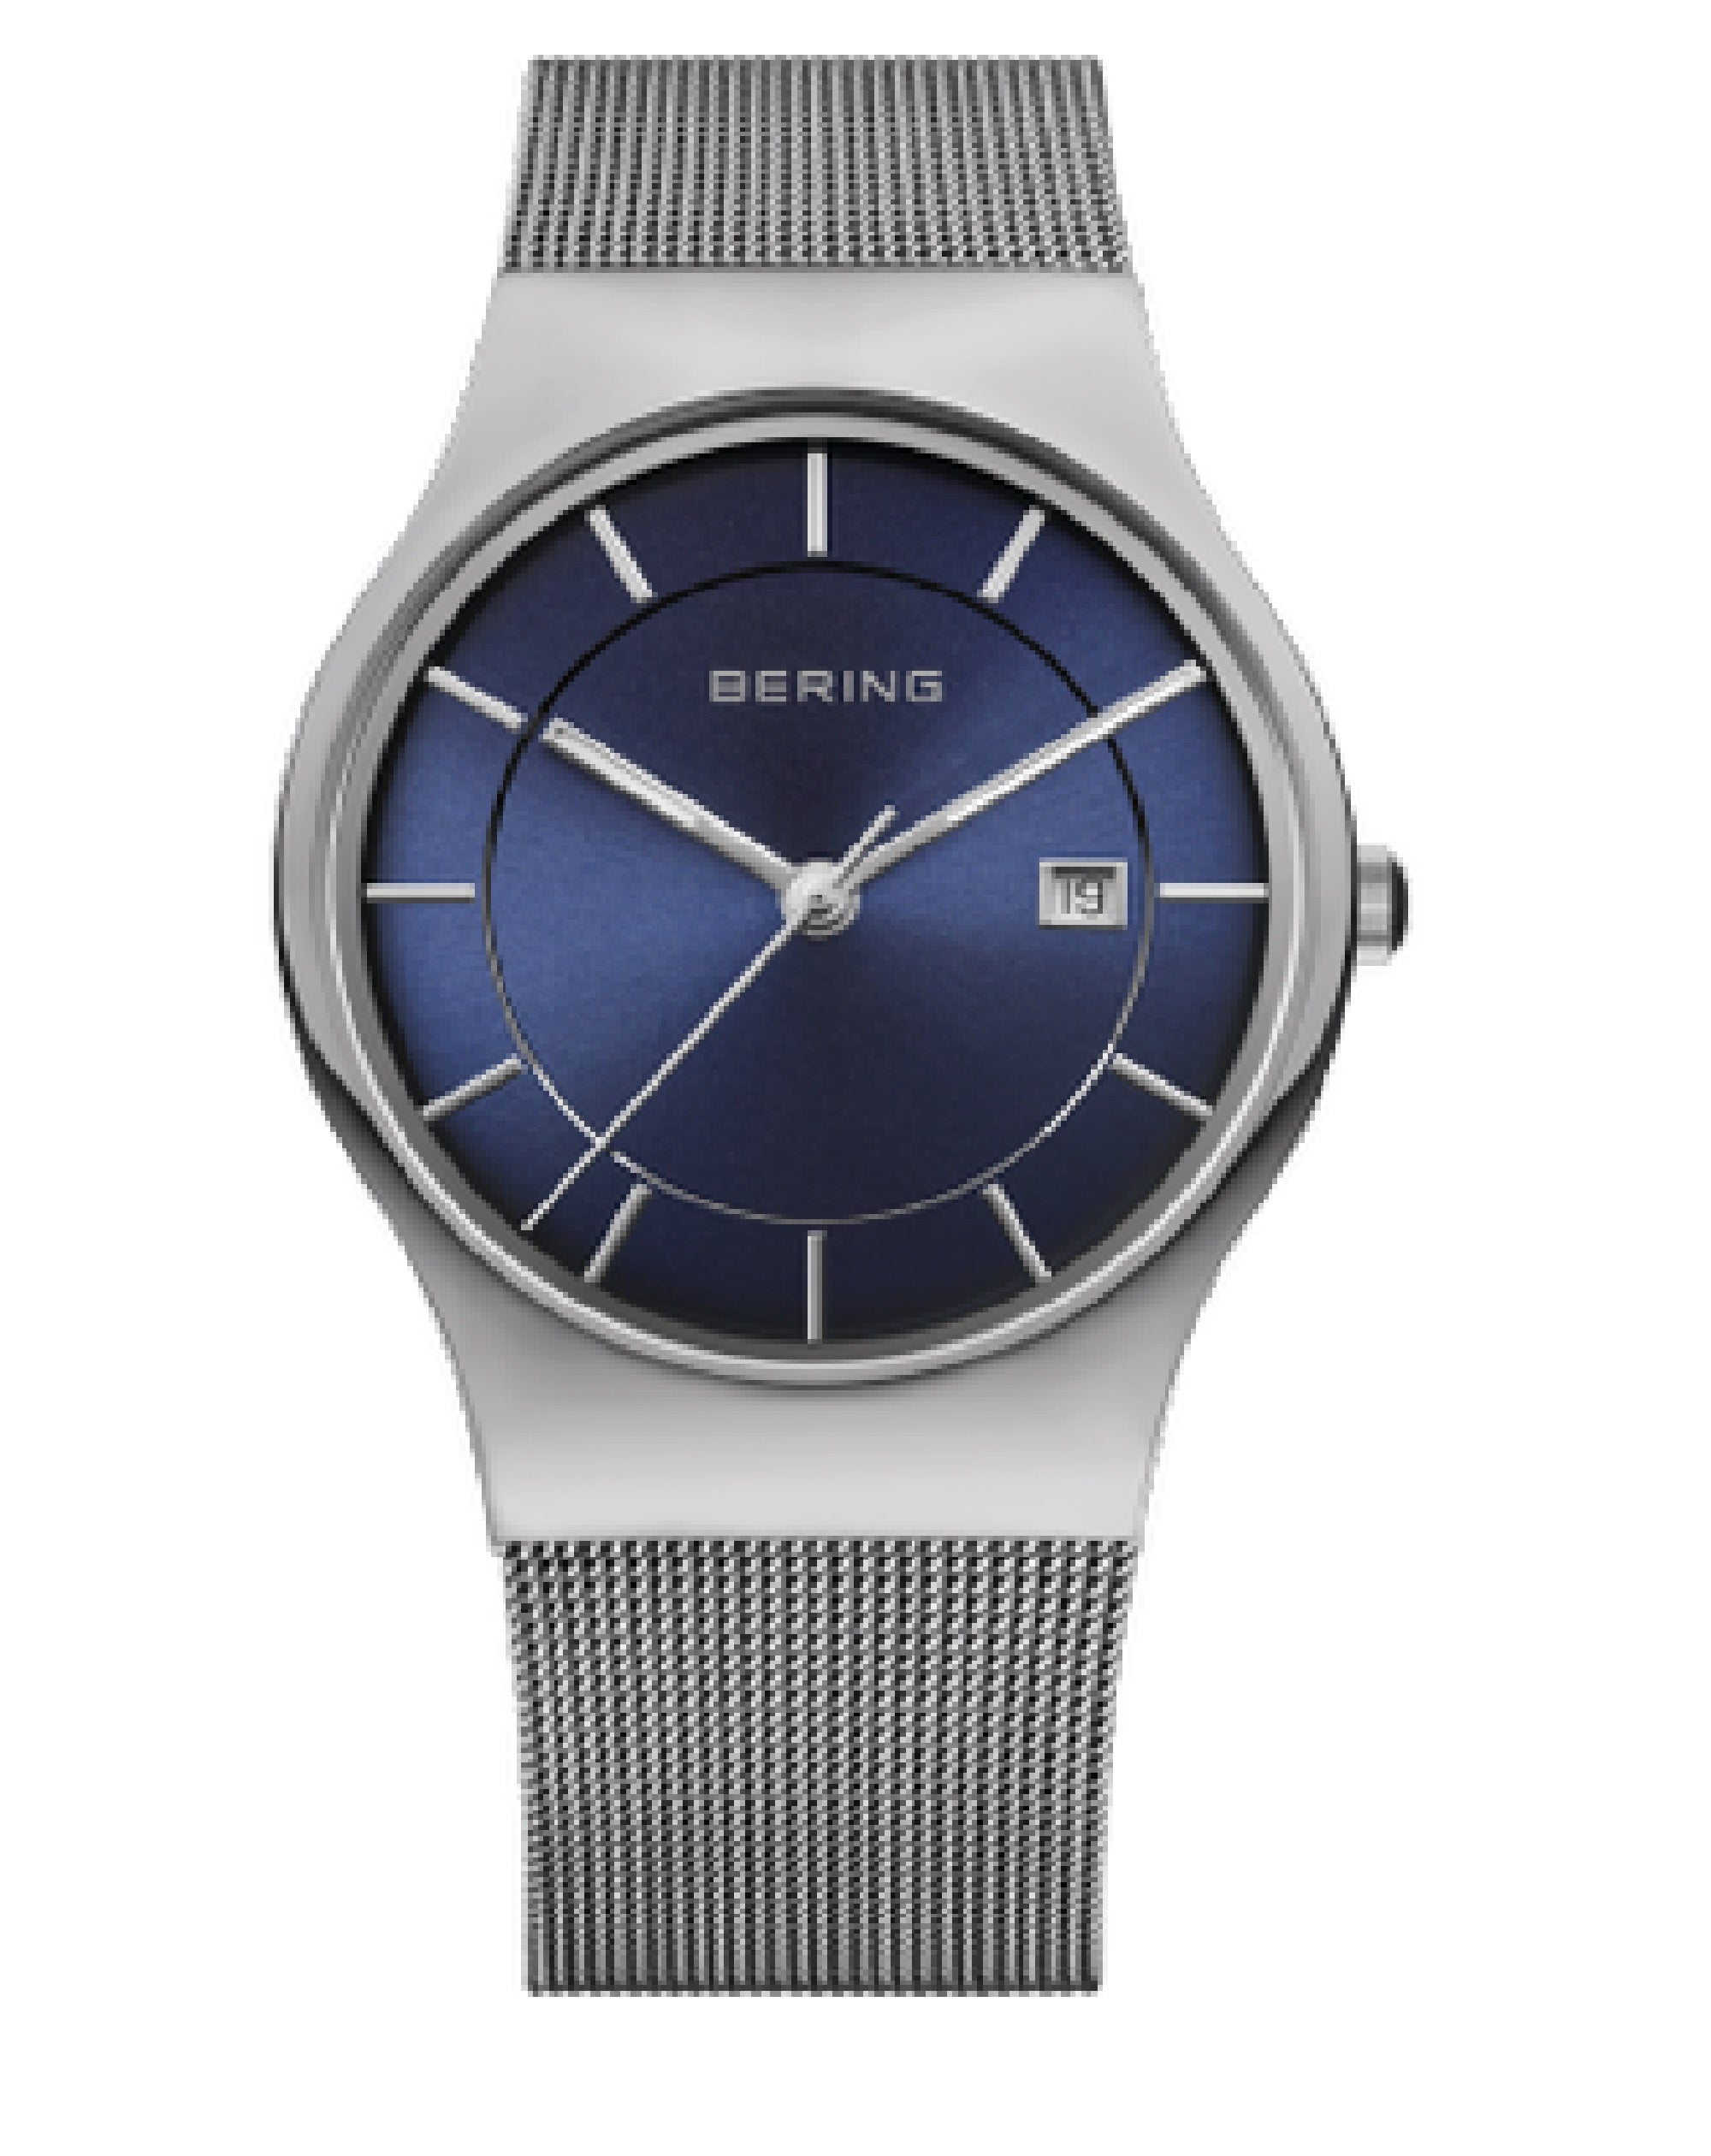 11938-003 Bering Classic Collection Quartz Watch